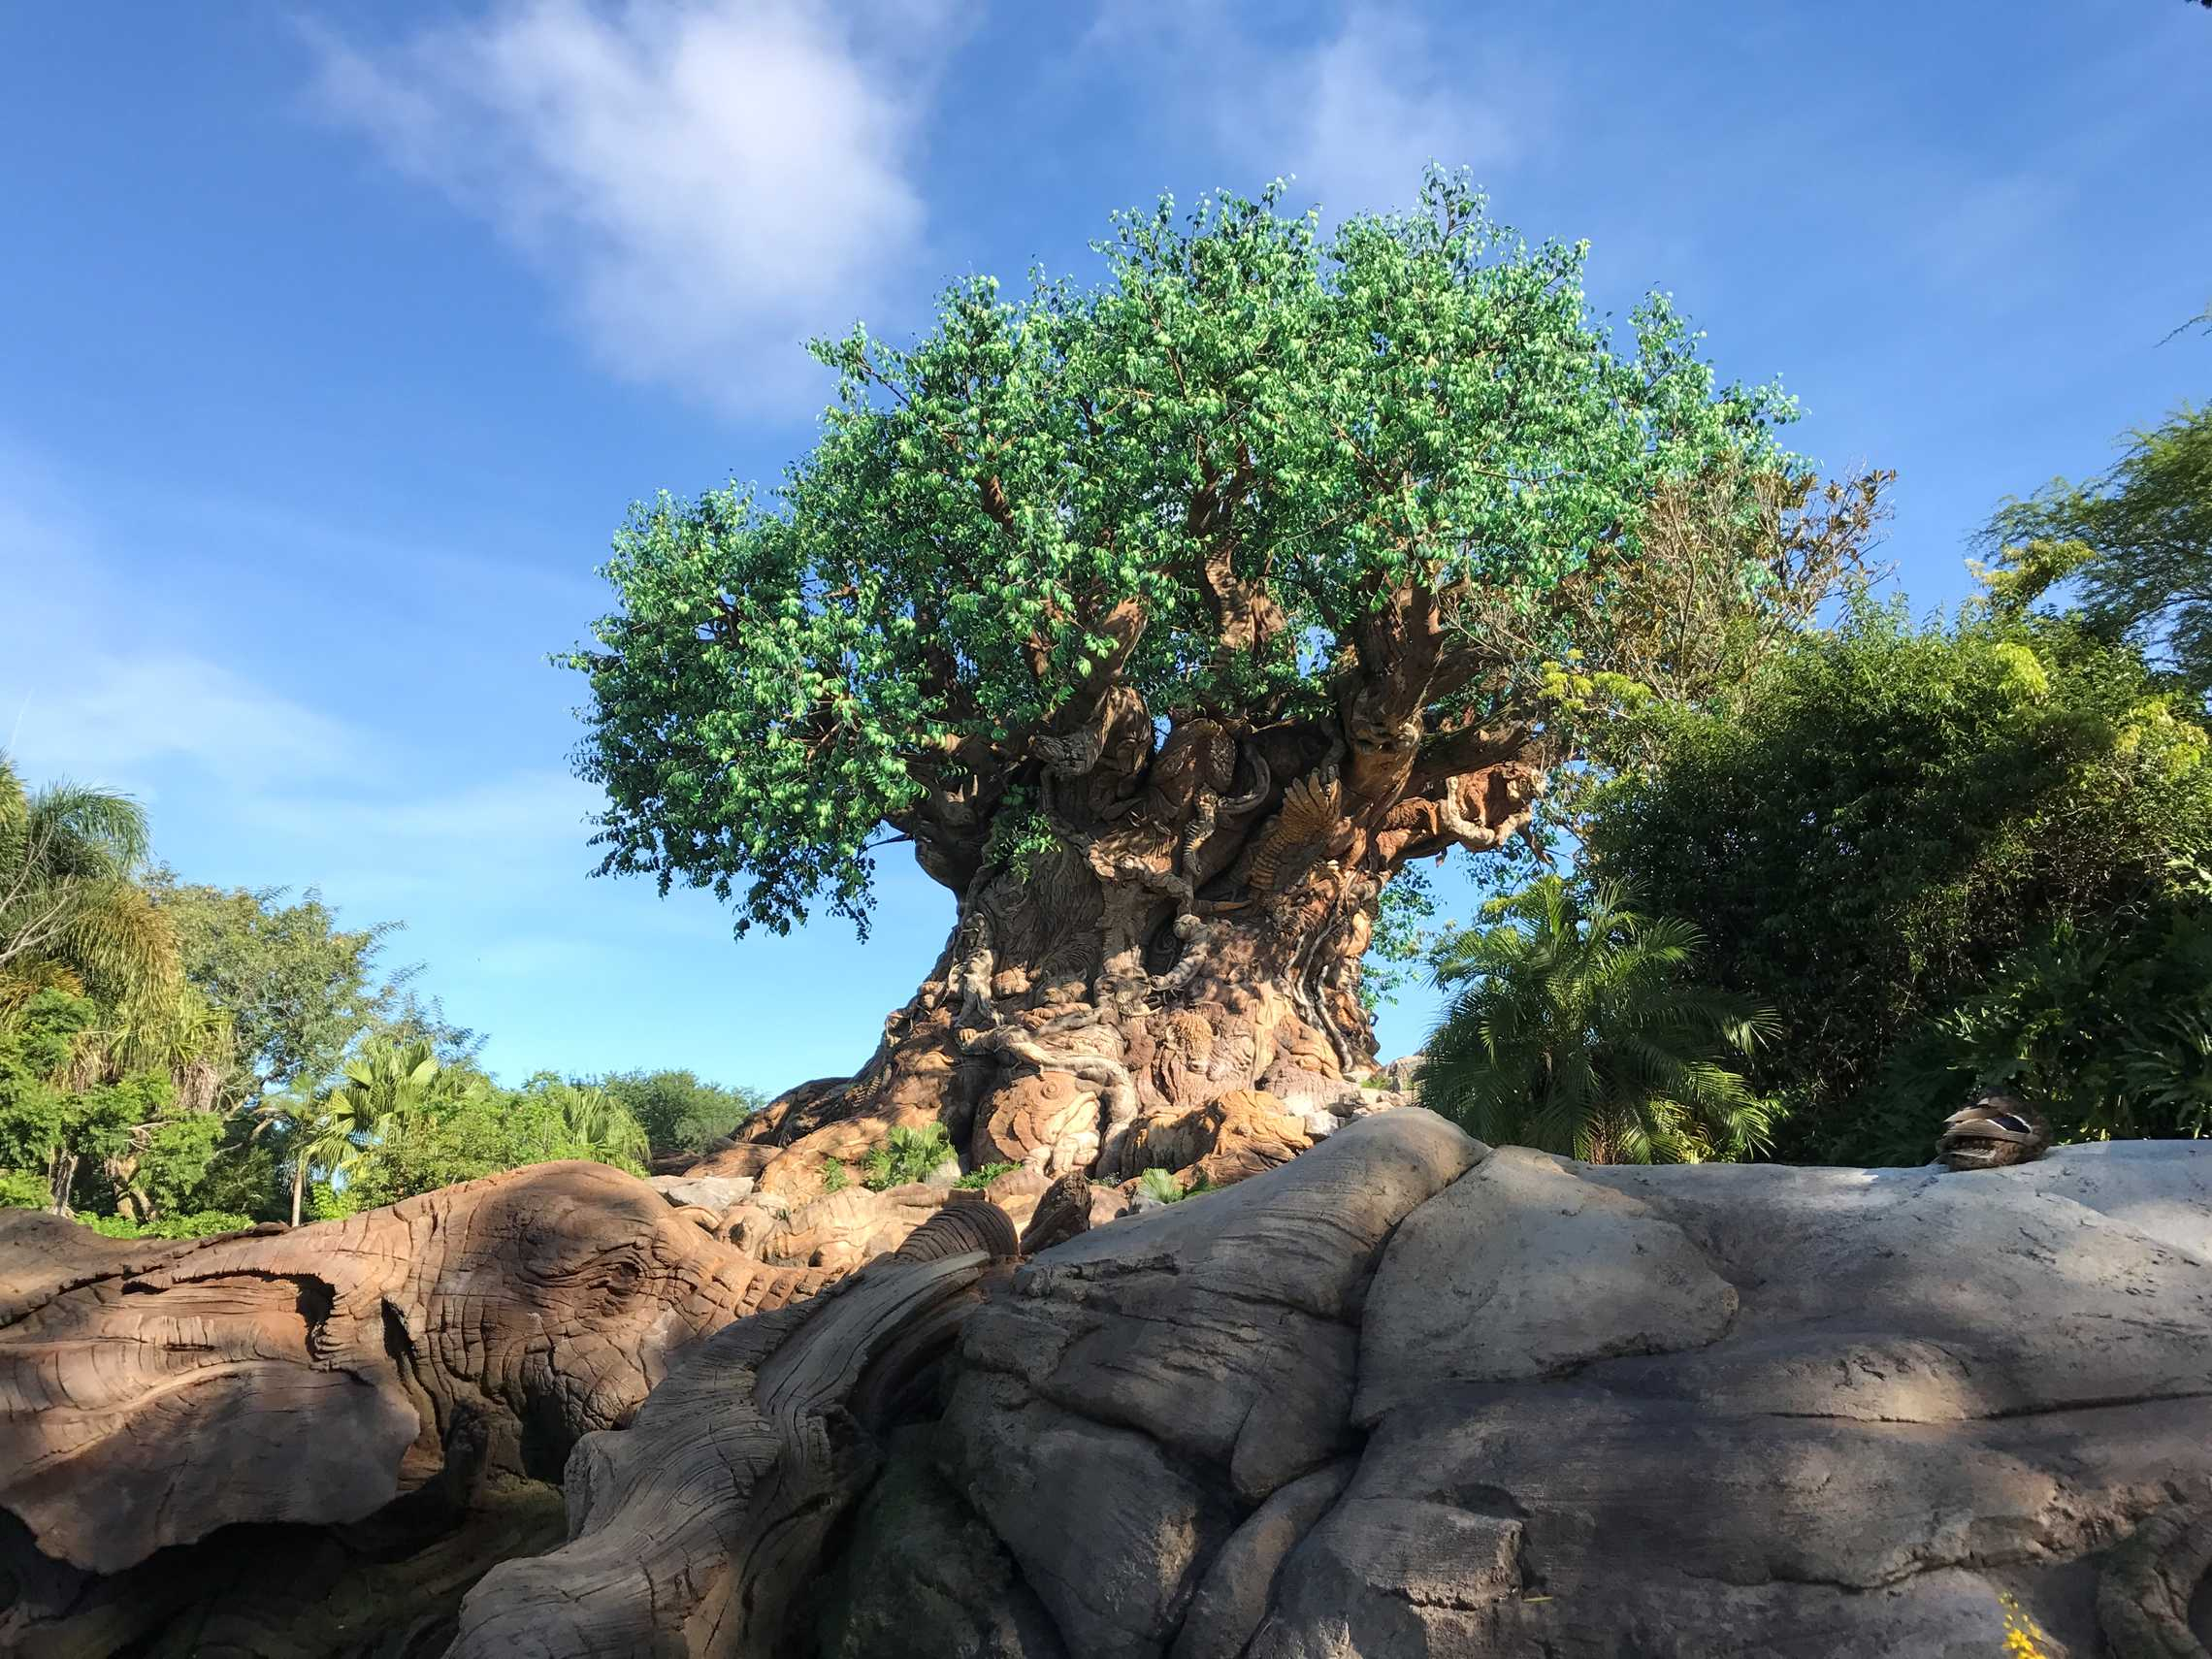 Tree of Life in sun, with the foreground rocks in shade